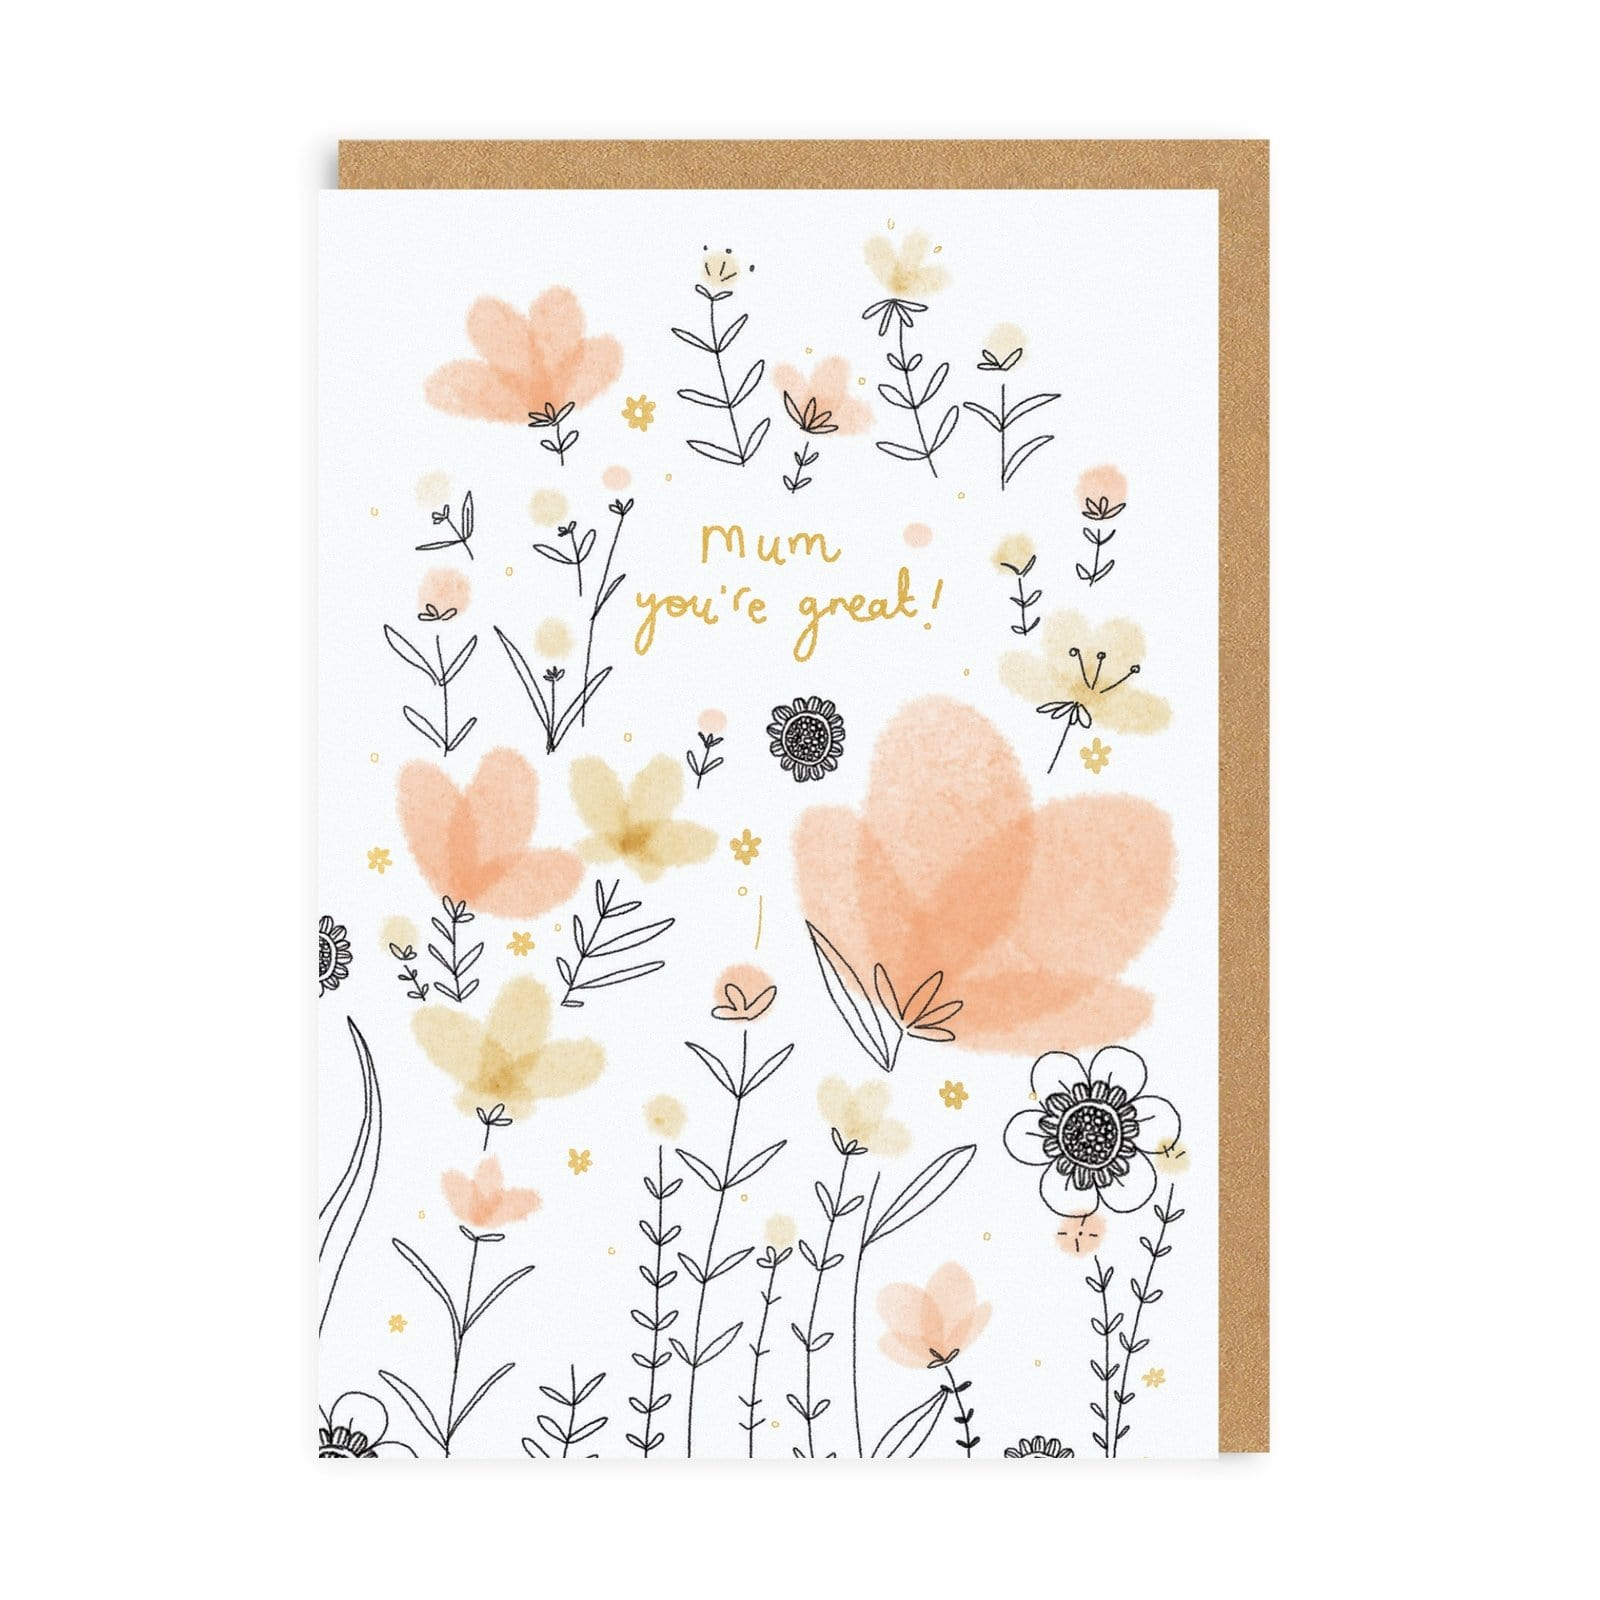 Mum You're Great! Greeting Card